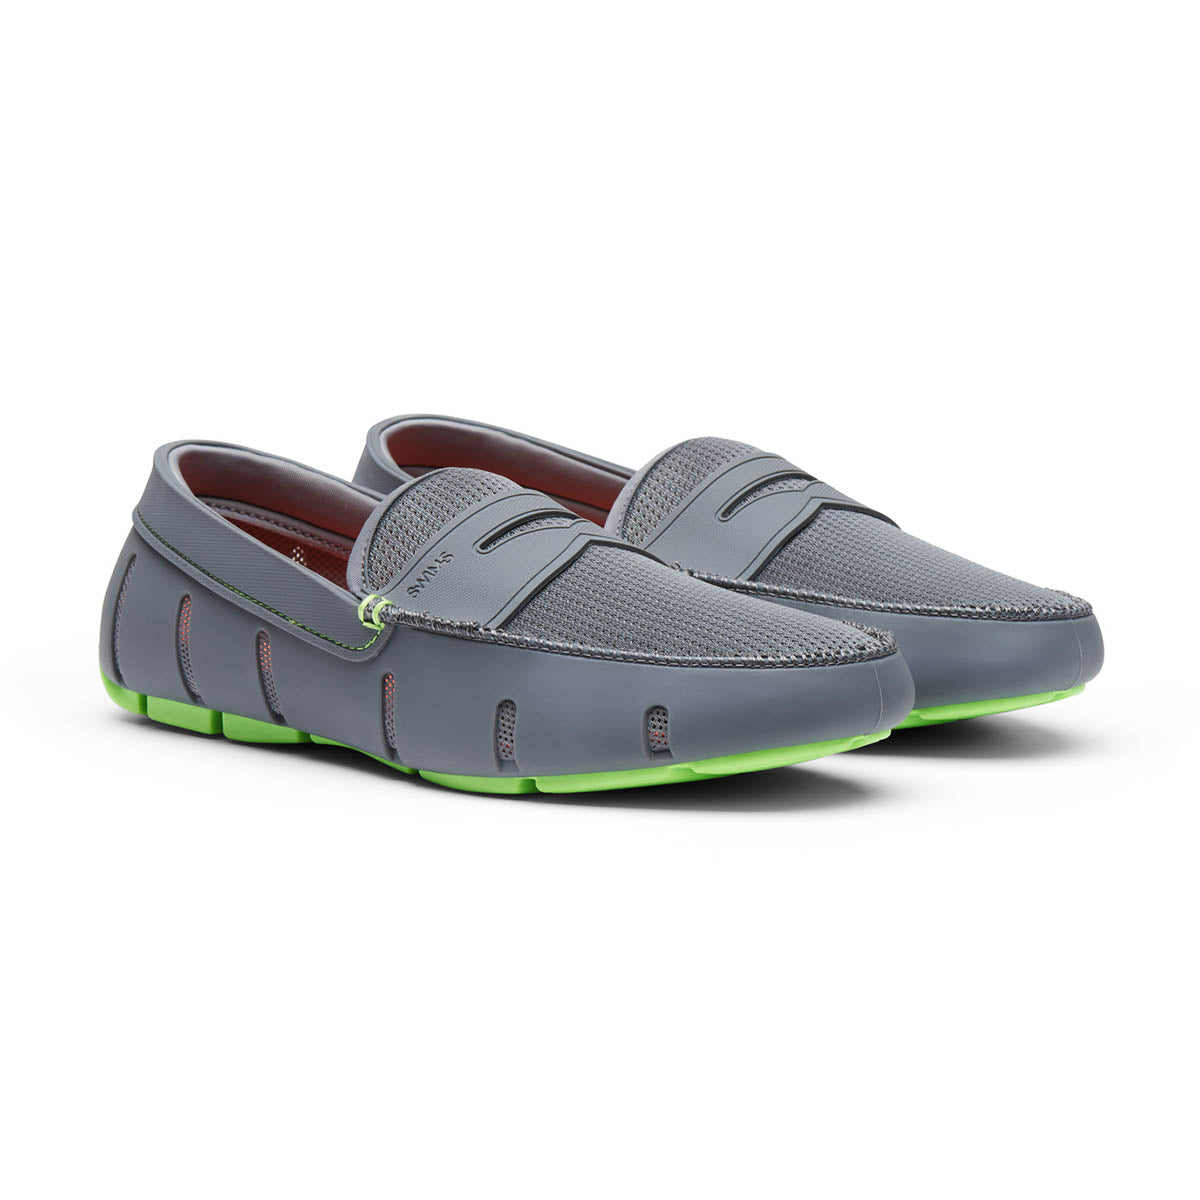 Penny Loafer - background::white,variant::Gray/Acid Green